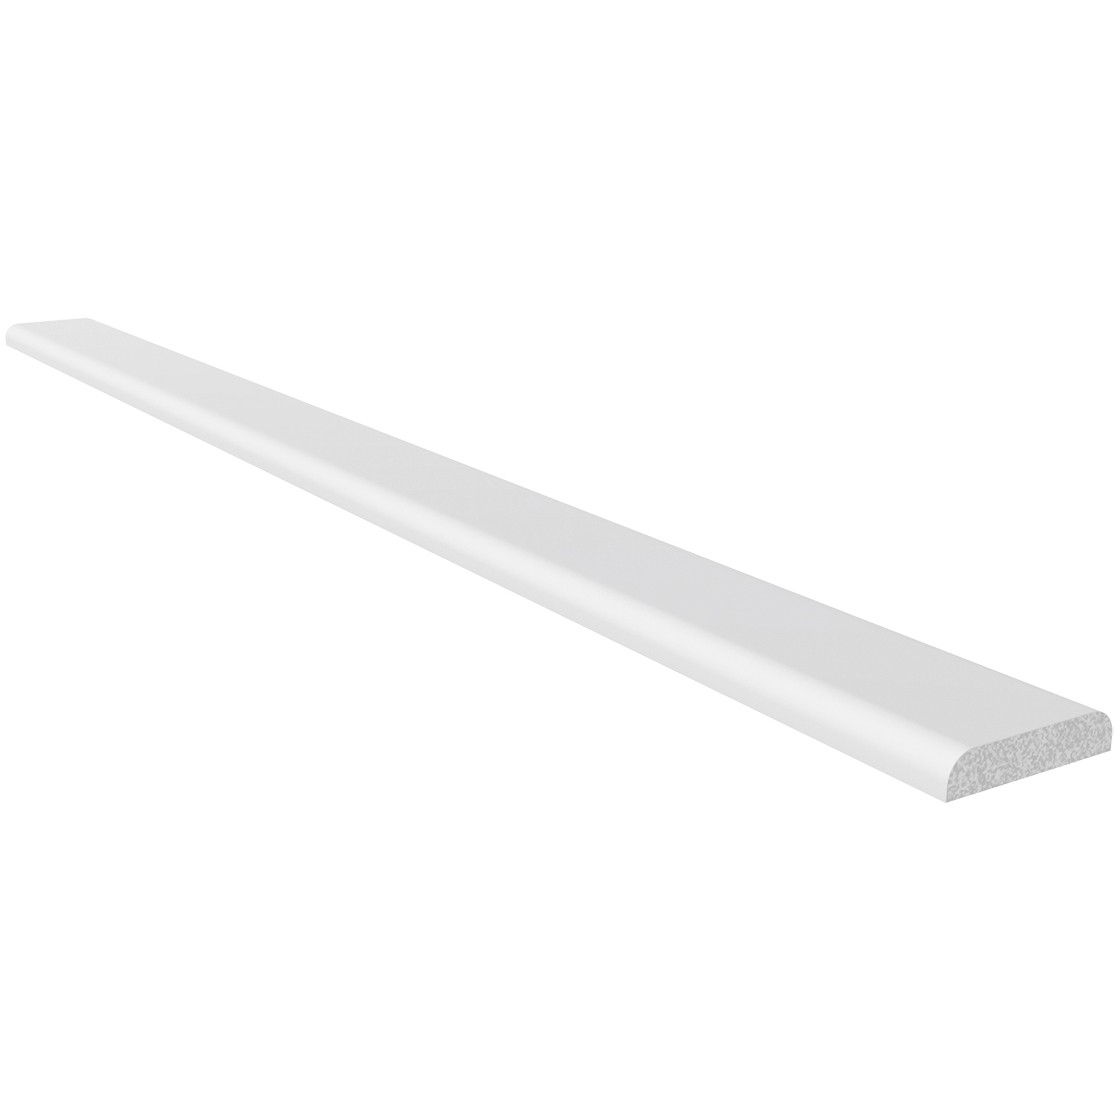 Freefoam Plastic D Shape Window Trim (1.25 metre x 4) - White, 28mm